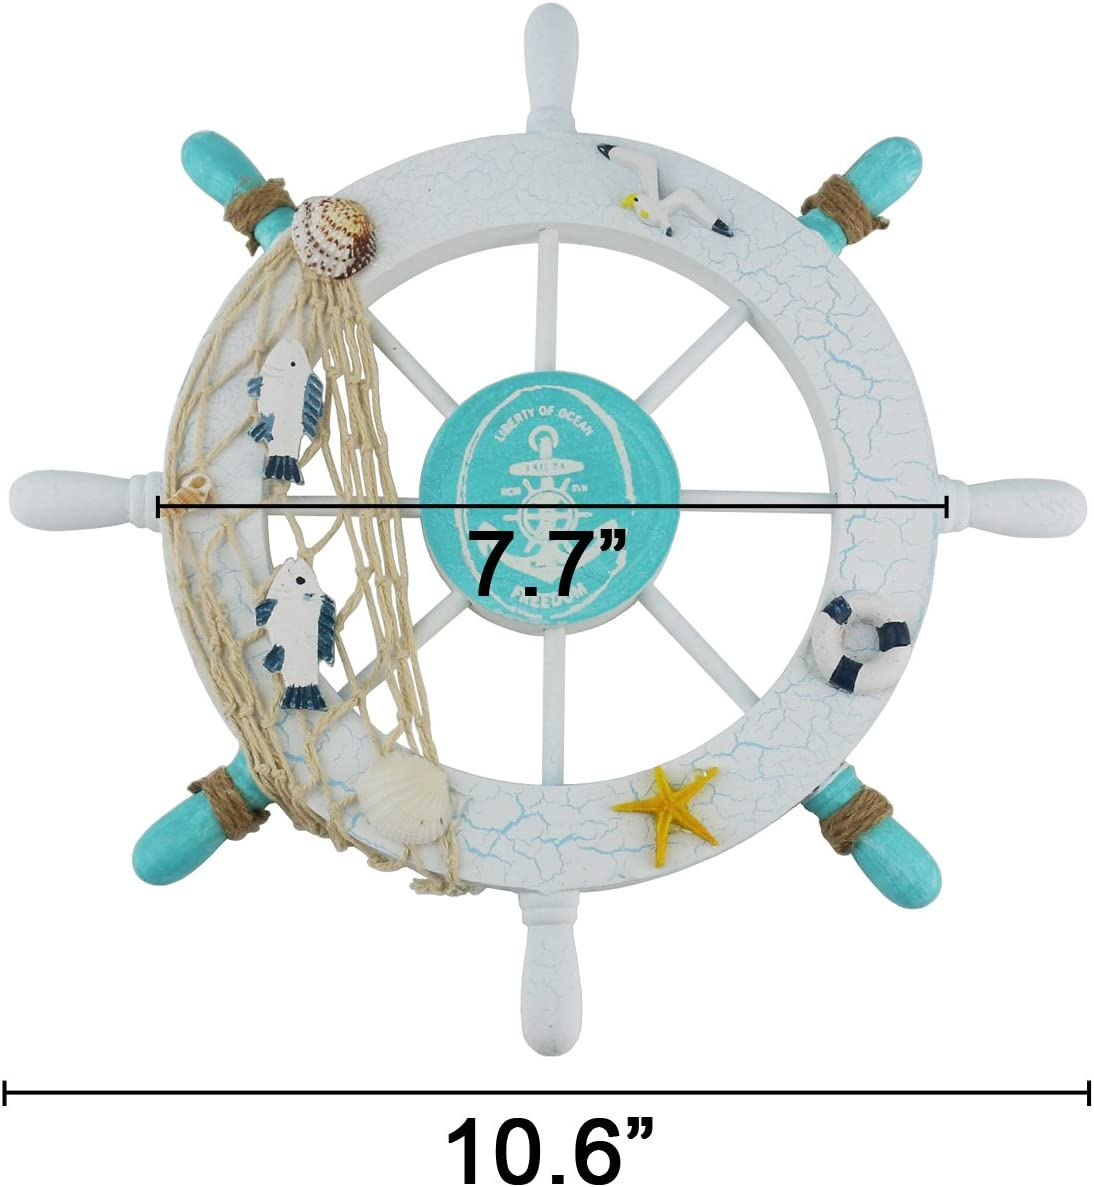 Ogrmar Mediterranean Nautical Wooden Boat Ship Steering Wheel//Handcrafted Wooden Ship Wheel Pirate Decor Wall and Door Hanging Ornament Plaque White Fish